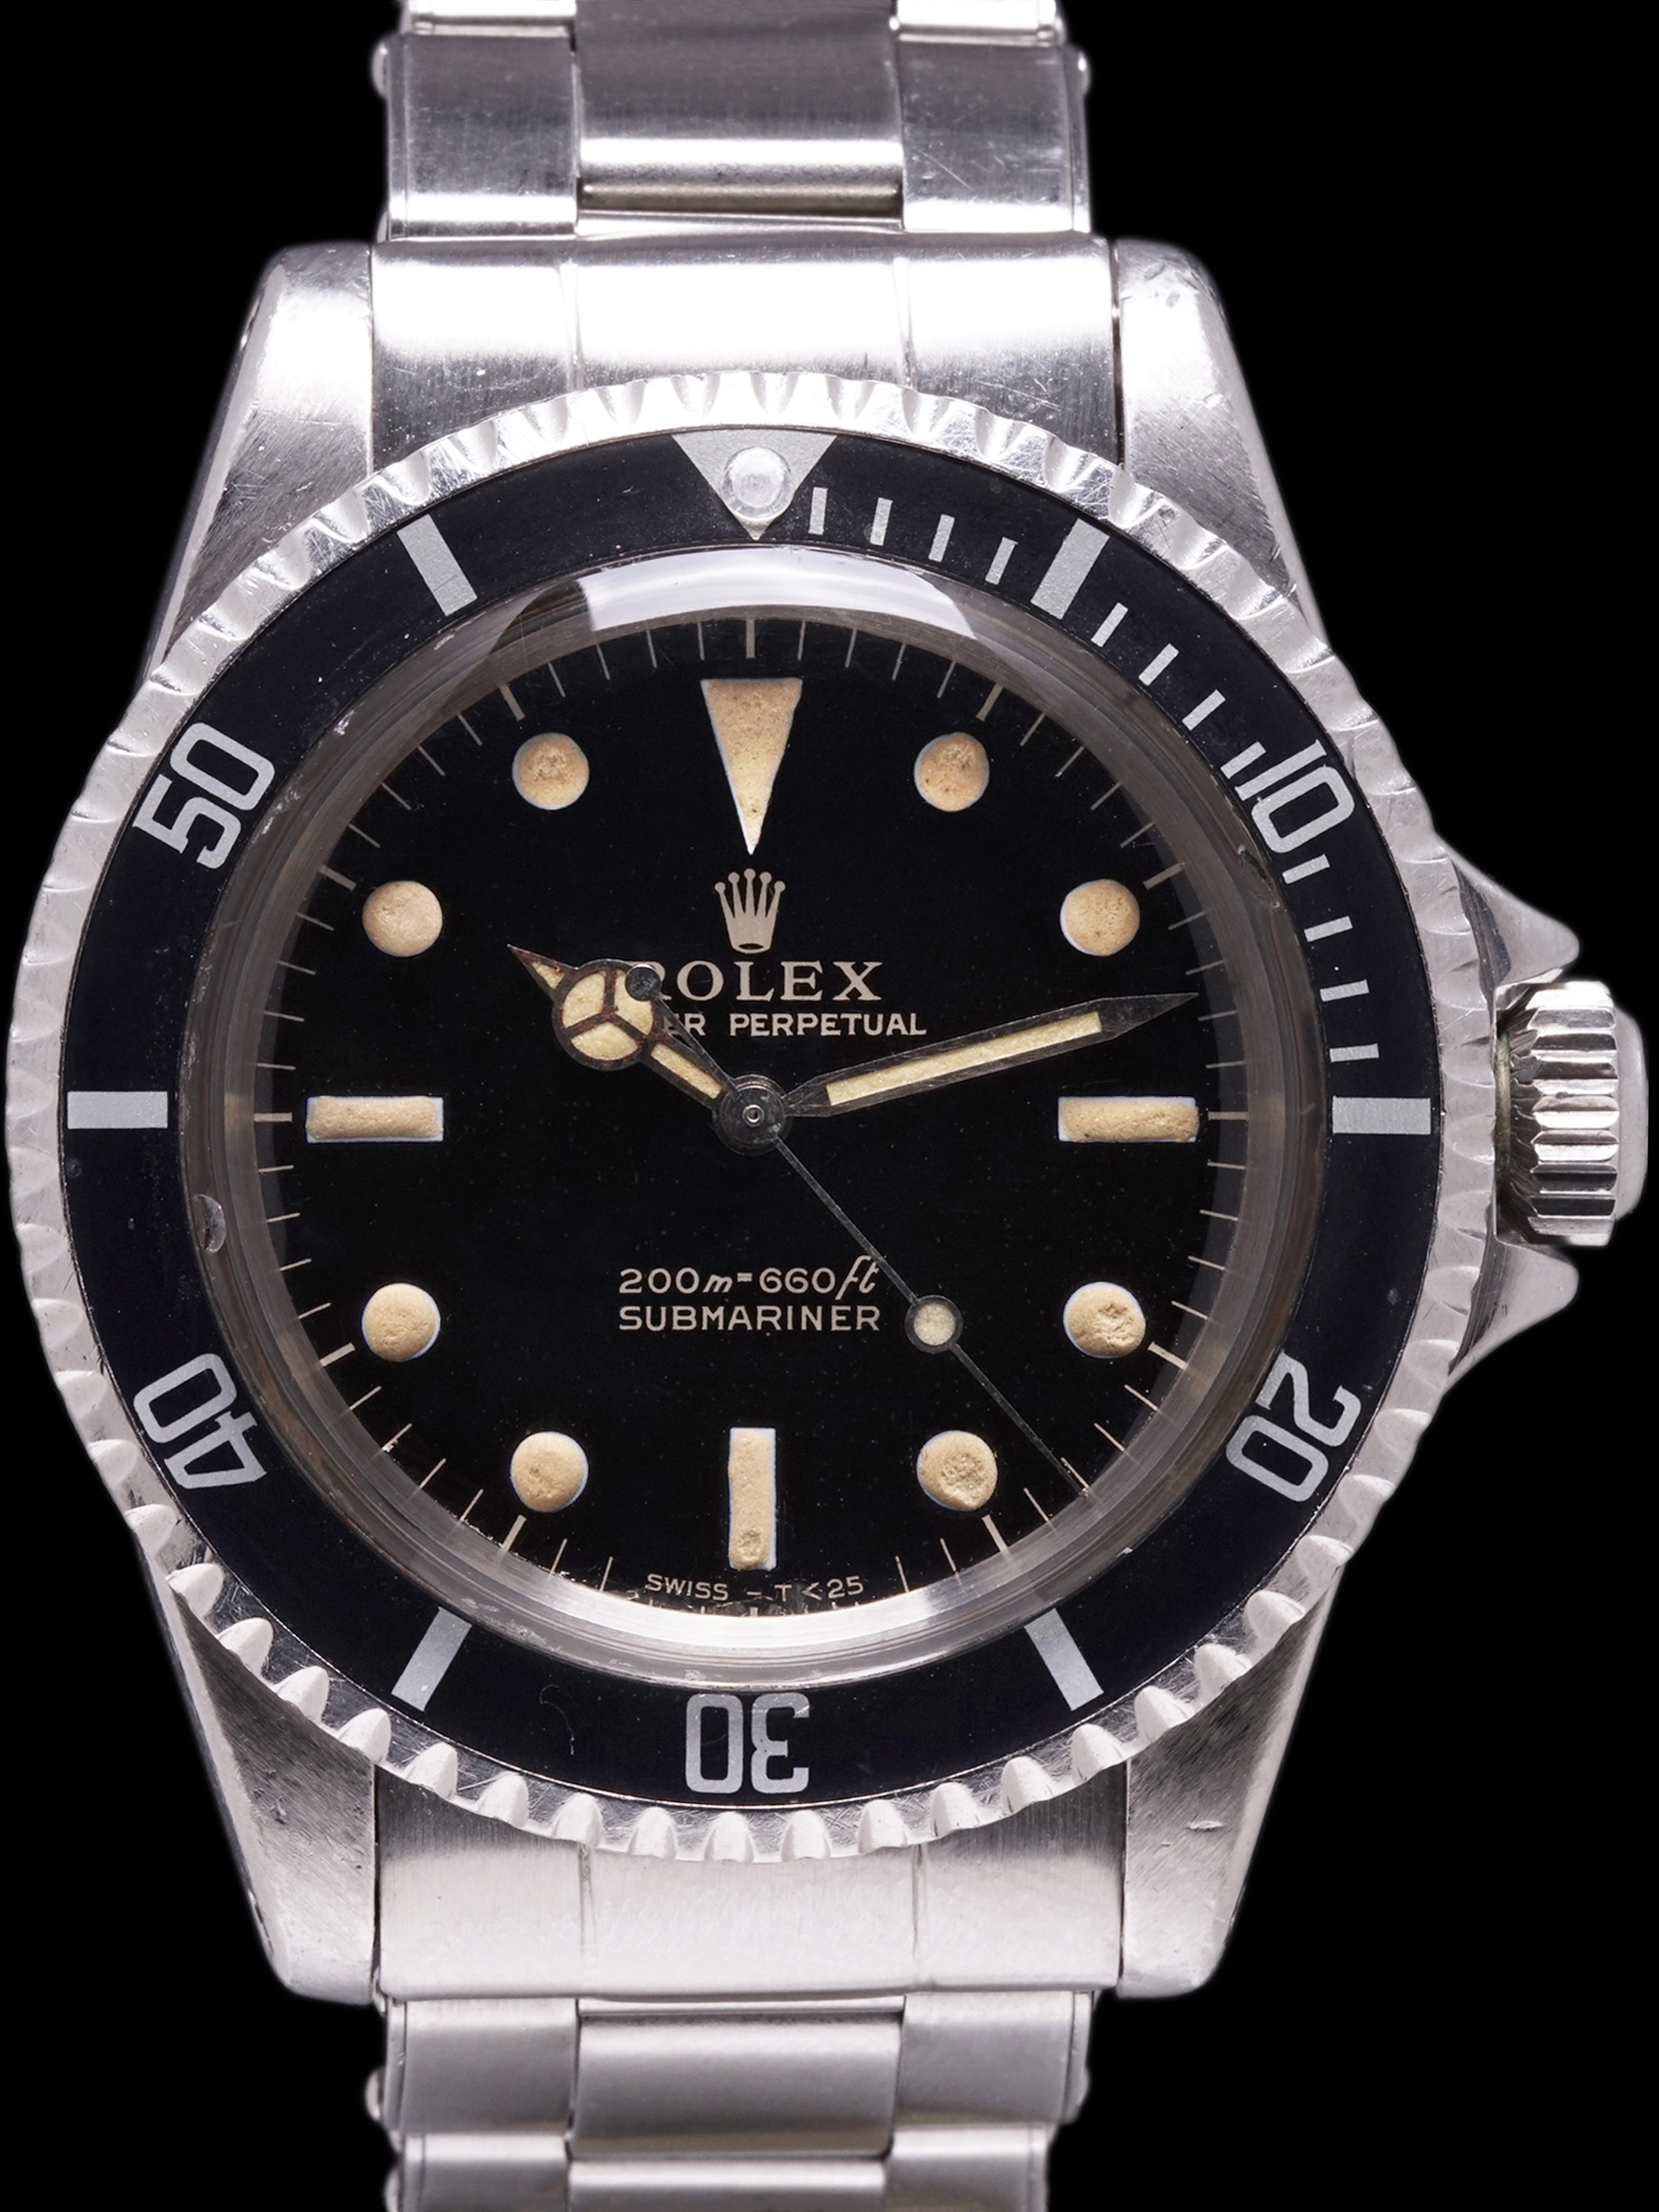 1966 Rolex Submariner (Ref. 5513) GILT Dial W/ Papers